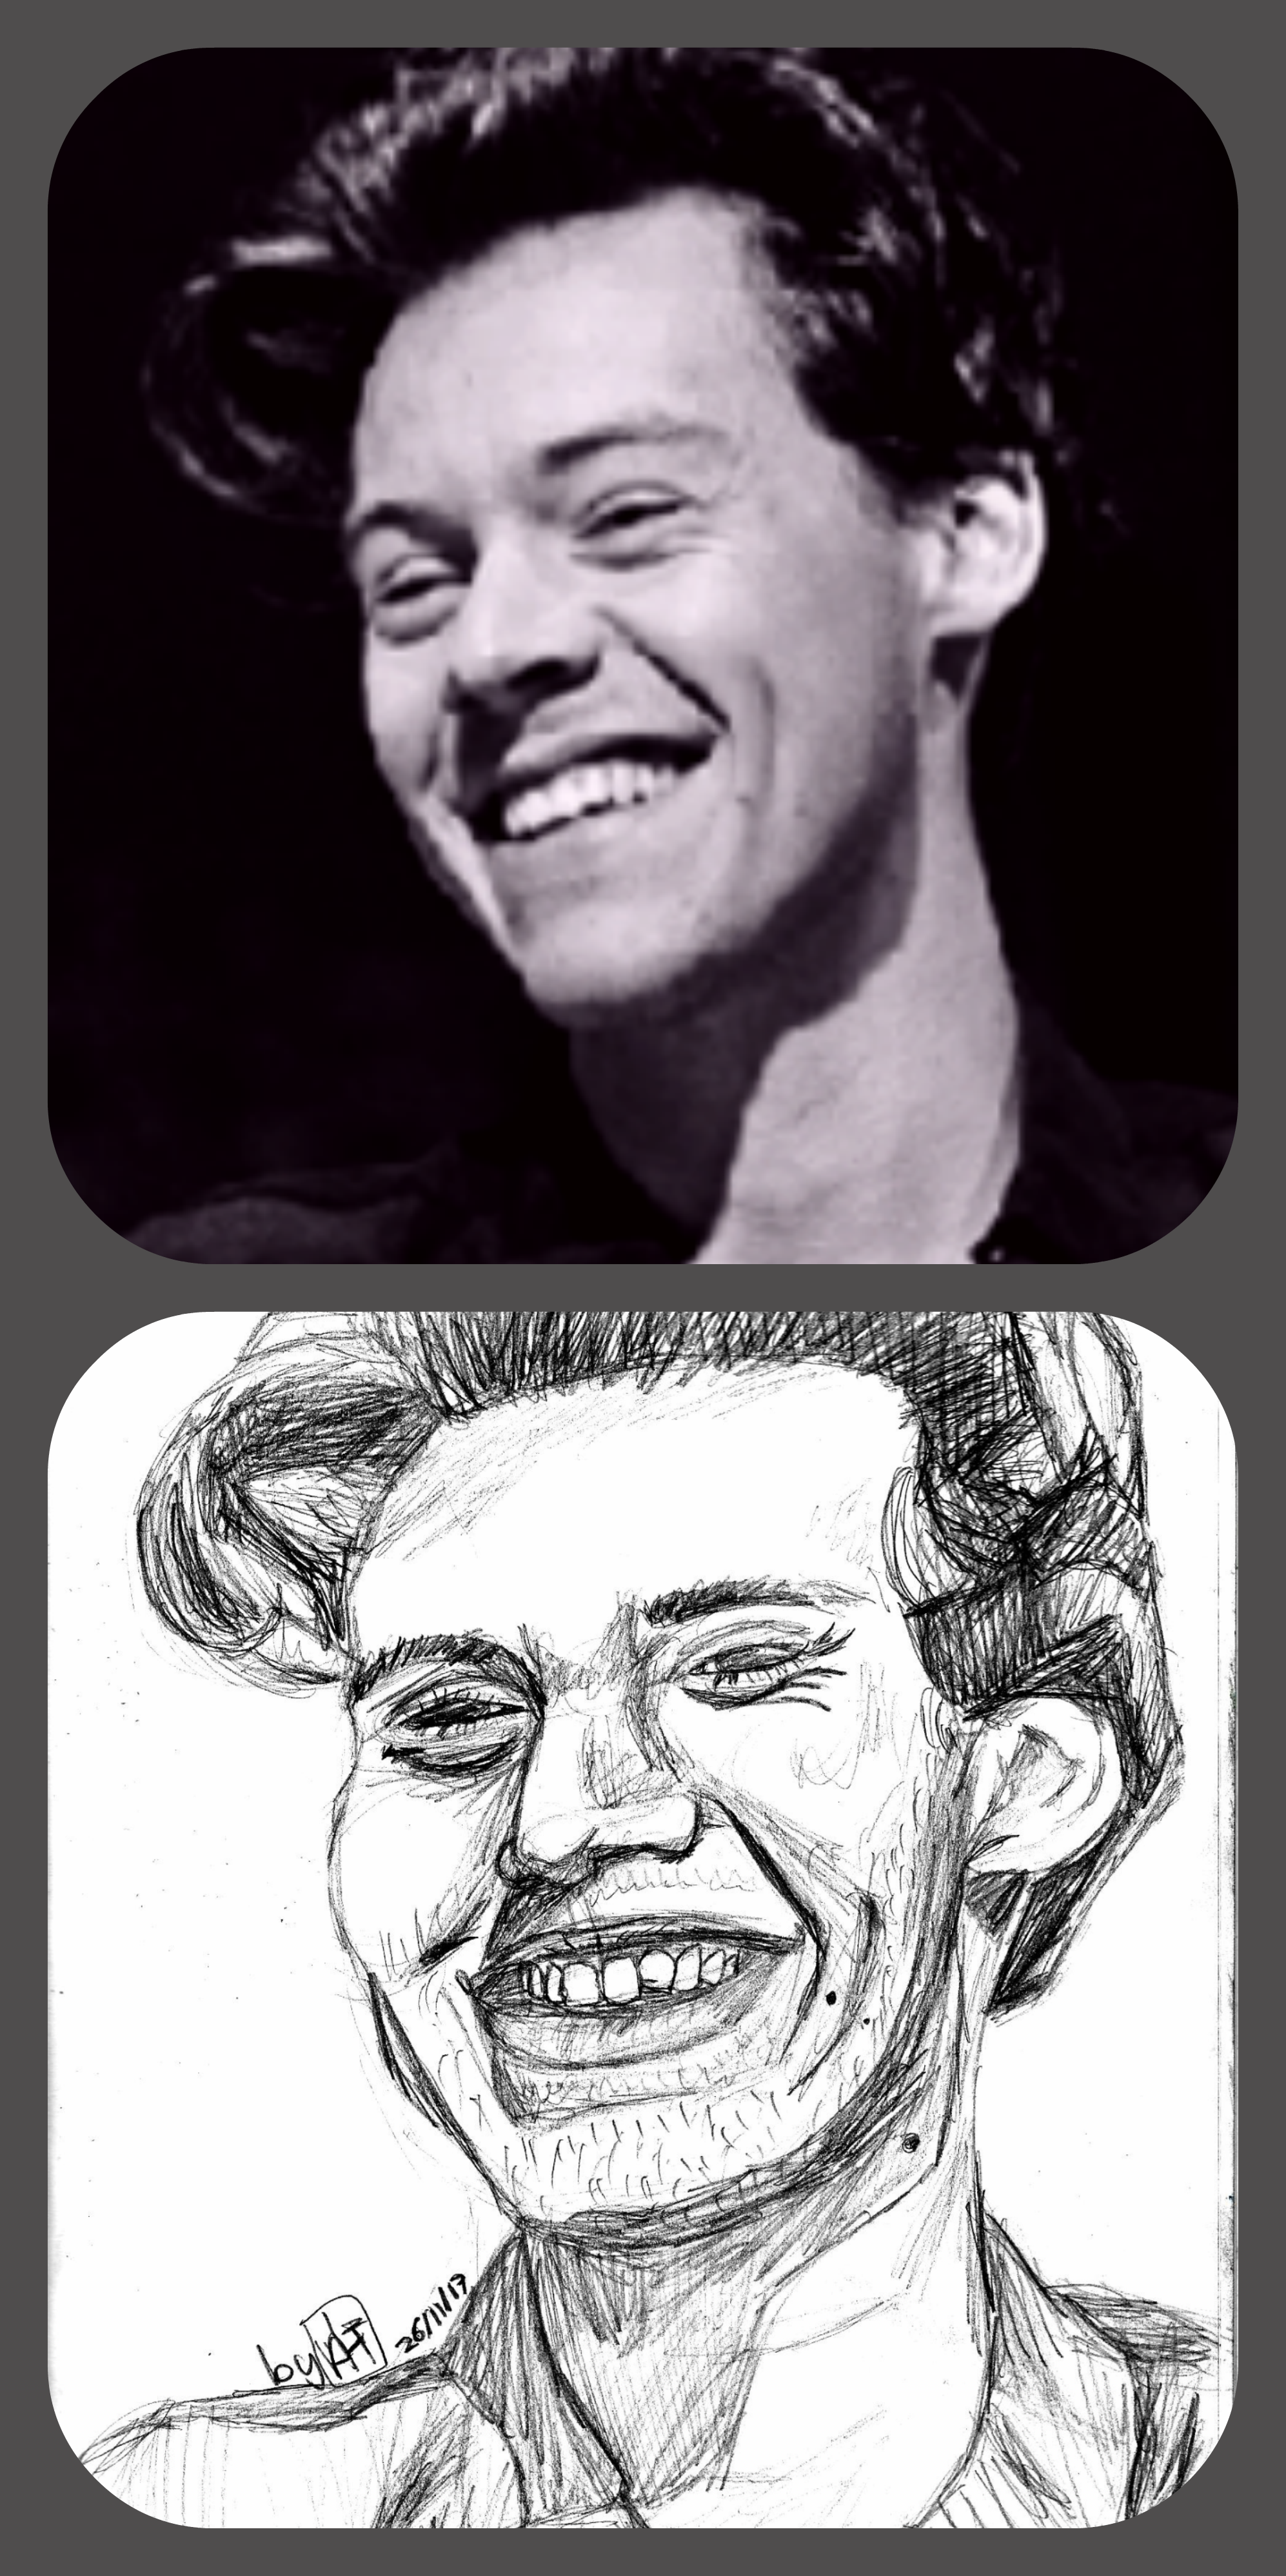 Here i have drawn harry styles i have used a mechanical pencil to draw